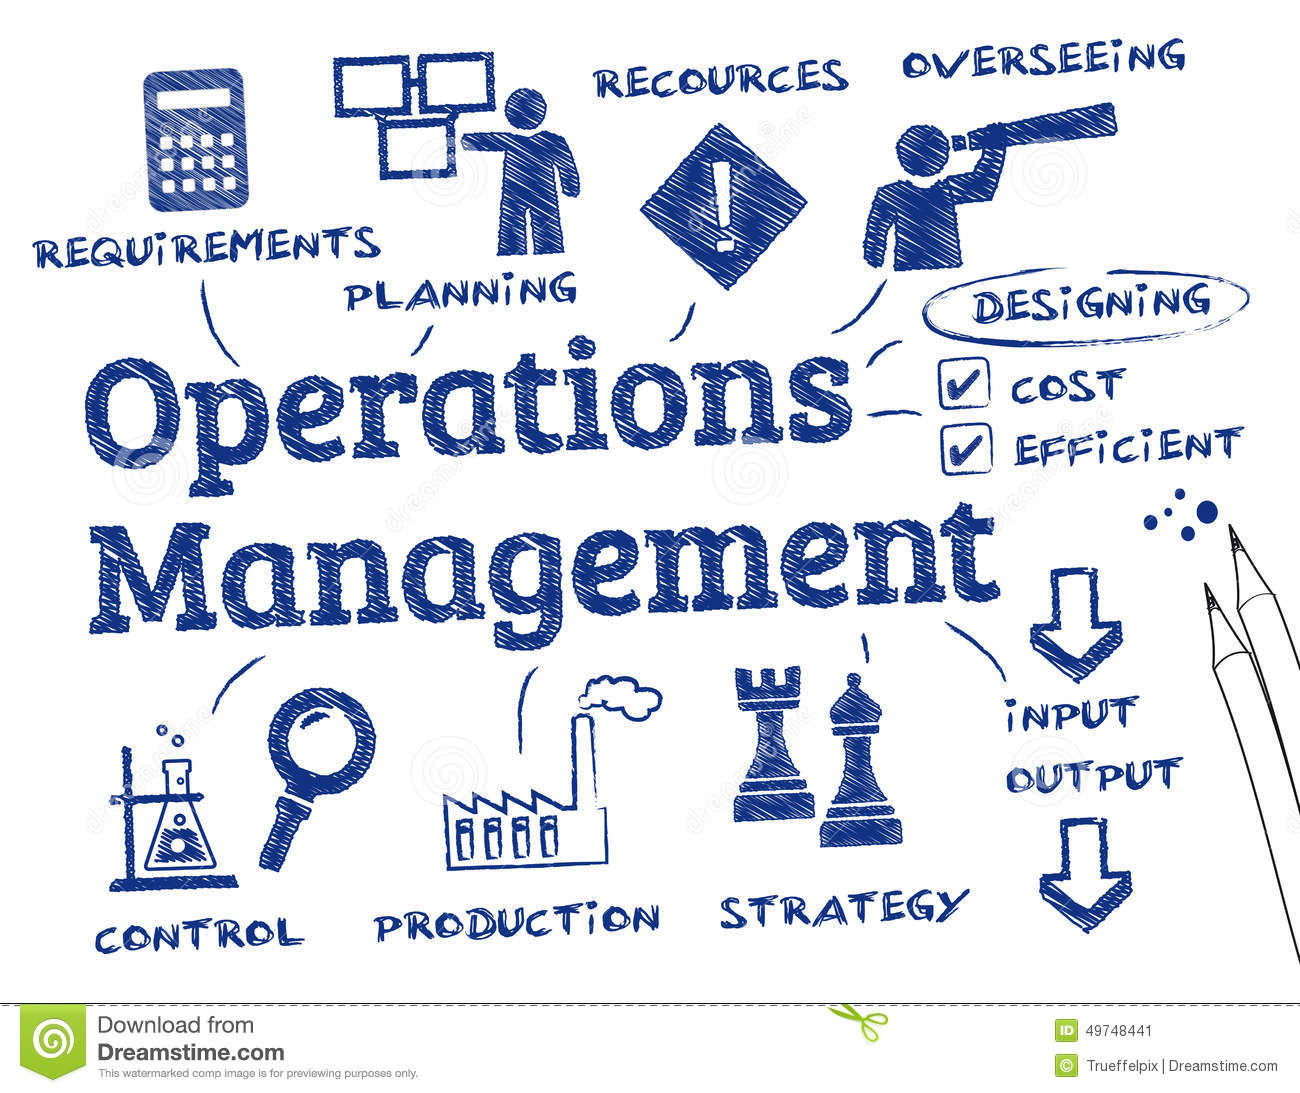 operational management Management of resources operations managers play a leading role in managing both raw materials and personnel oversight of inventory, purchasing and supplies is.